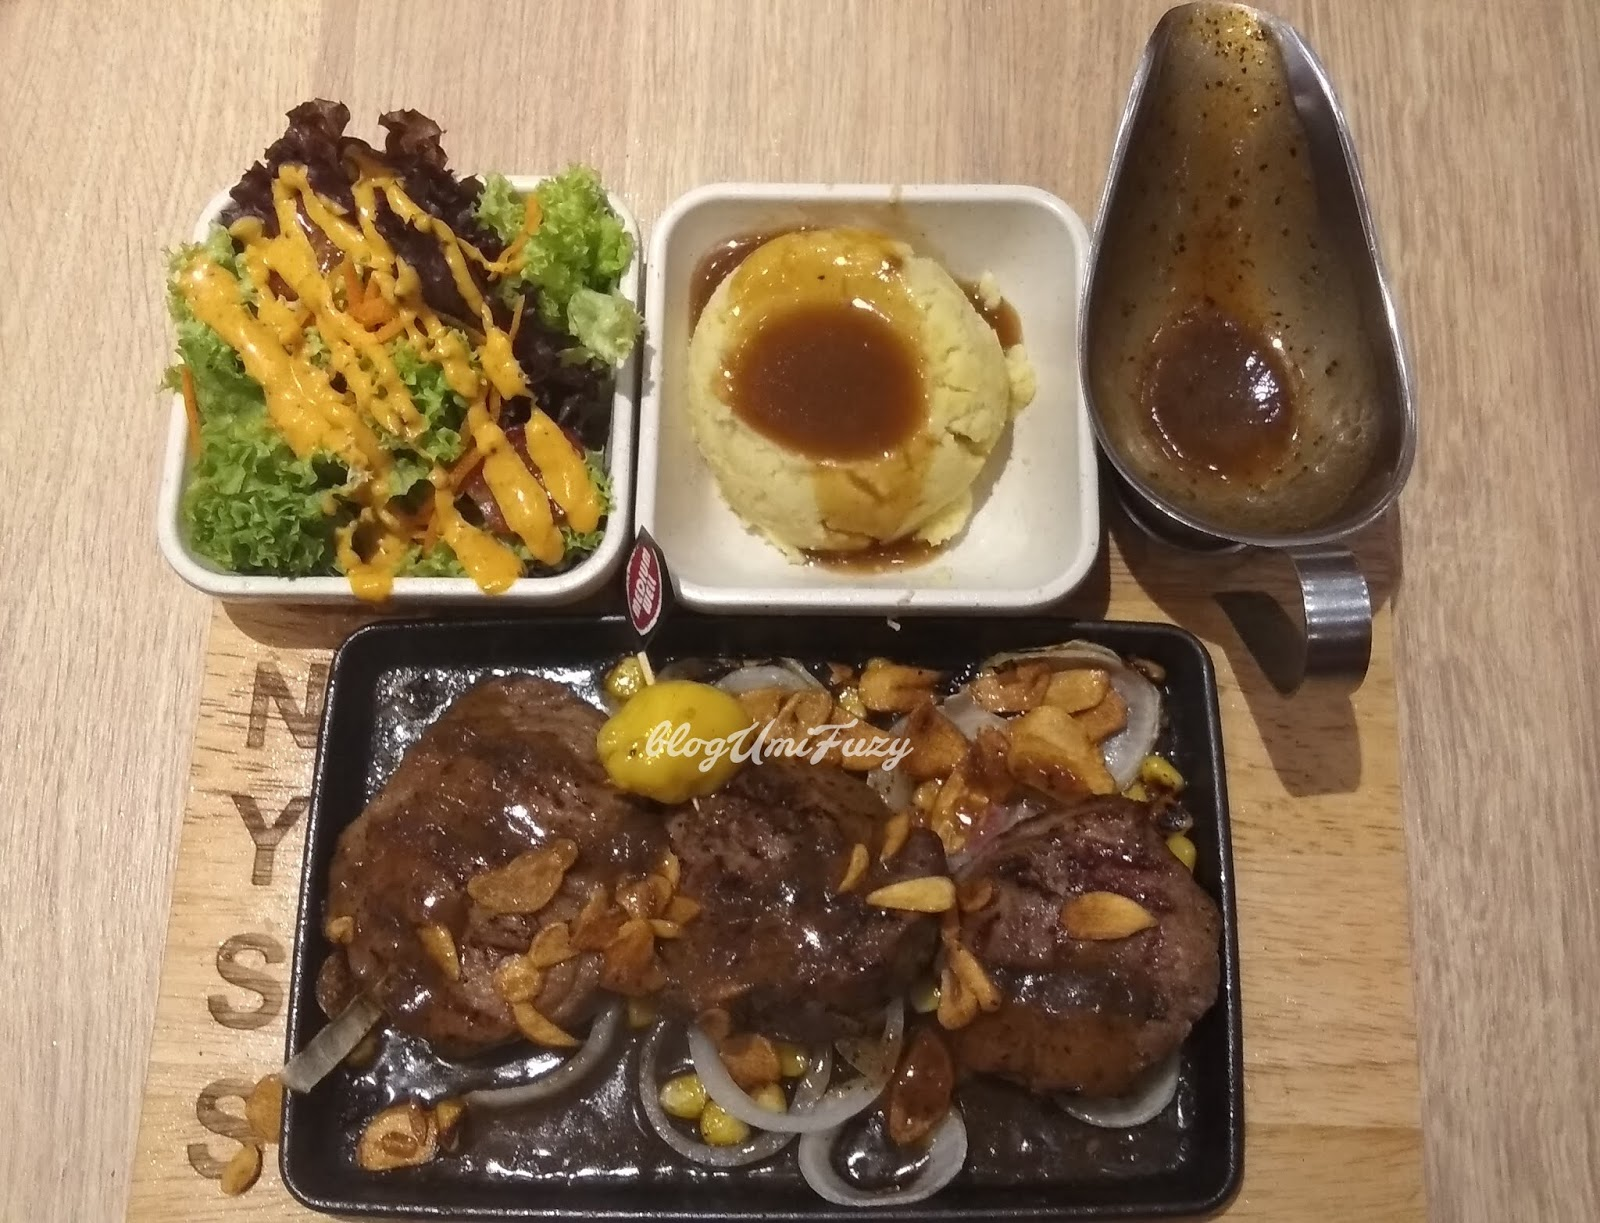 NYSS Rolls Out All-New And Improved Menu, Fresh And Sizzling